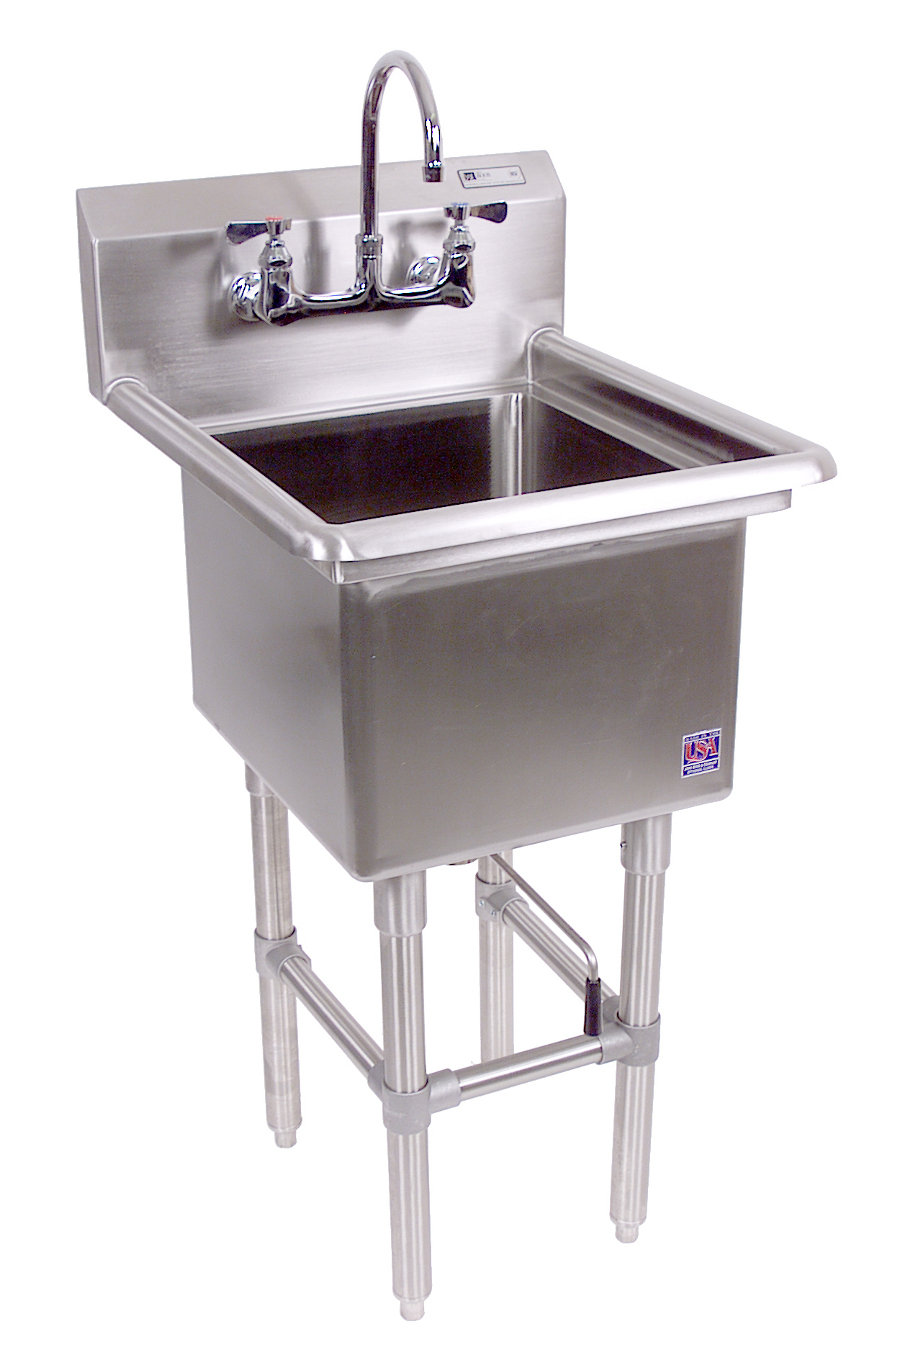 Boos Pro Bowl Sink One Bowl Compartment Sink